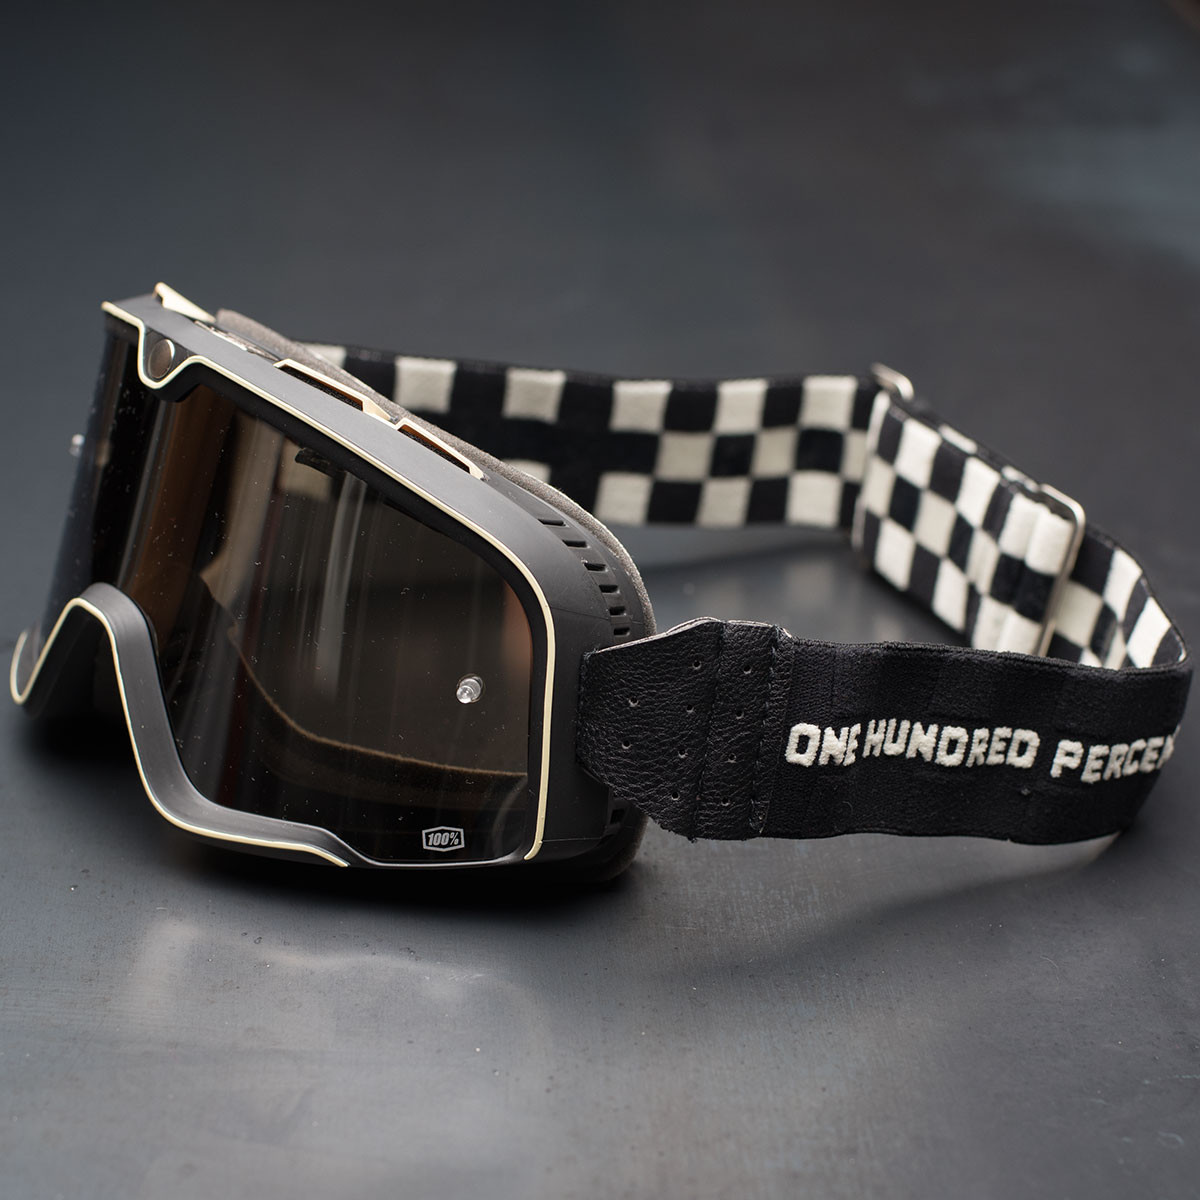 100_-Goggles-Barstow-Legend-Checkers-Revival-Cycles-001